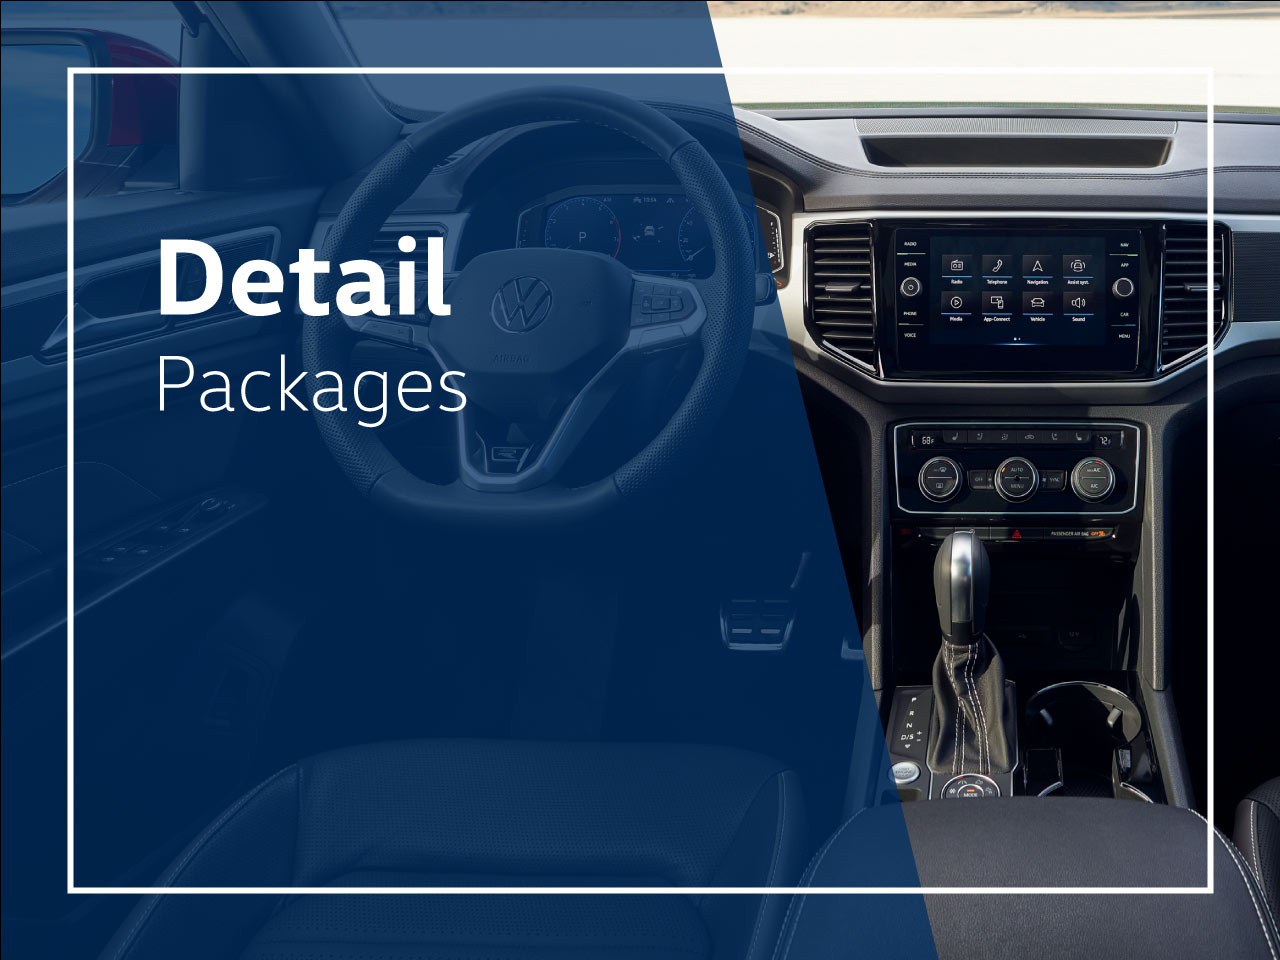 Cowell Volkswagen Special Offers - Detail Packages